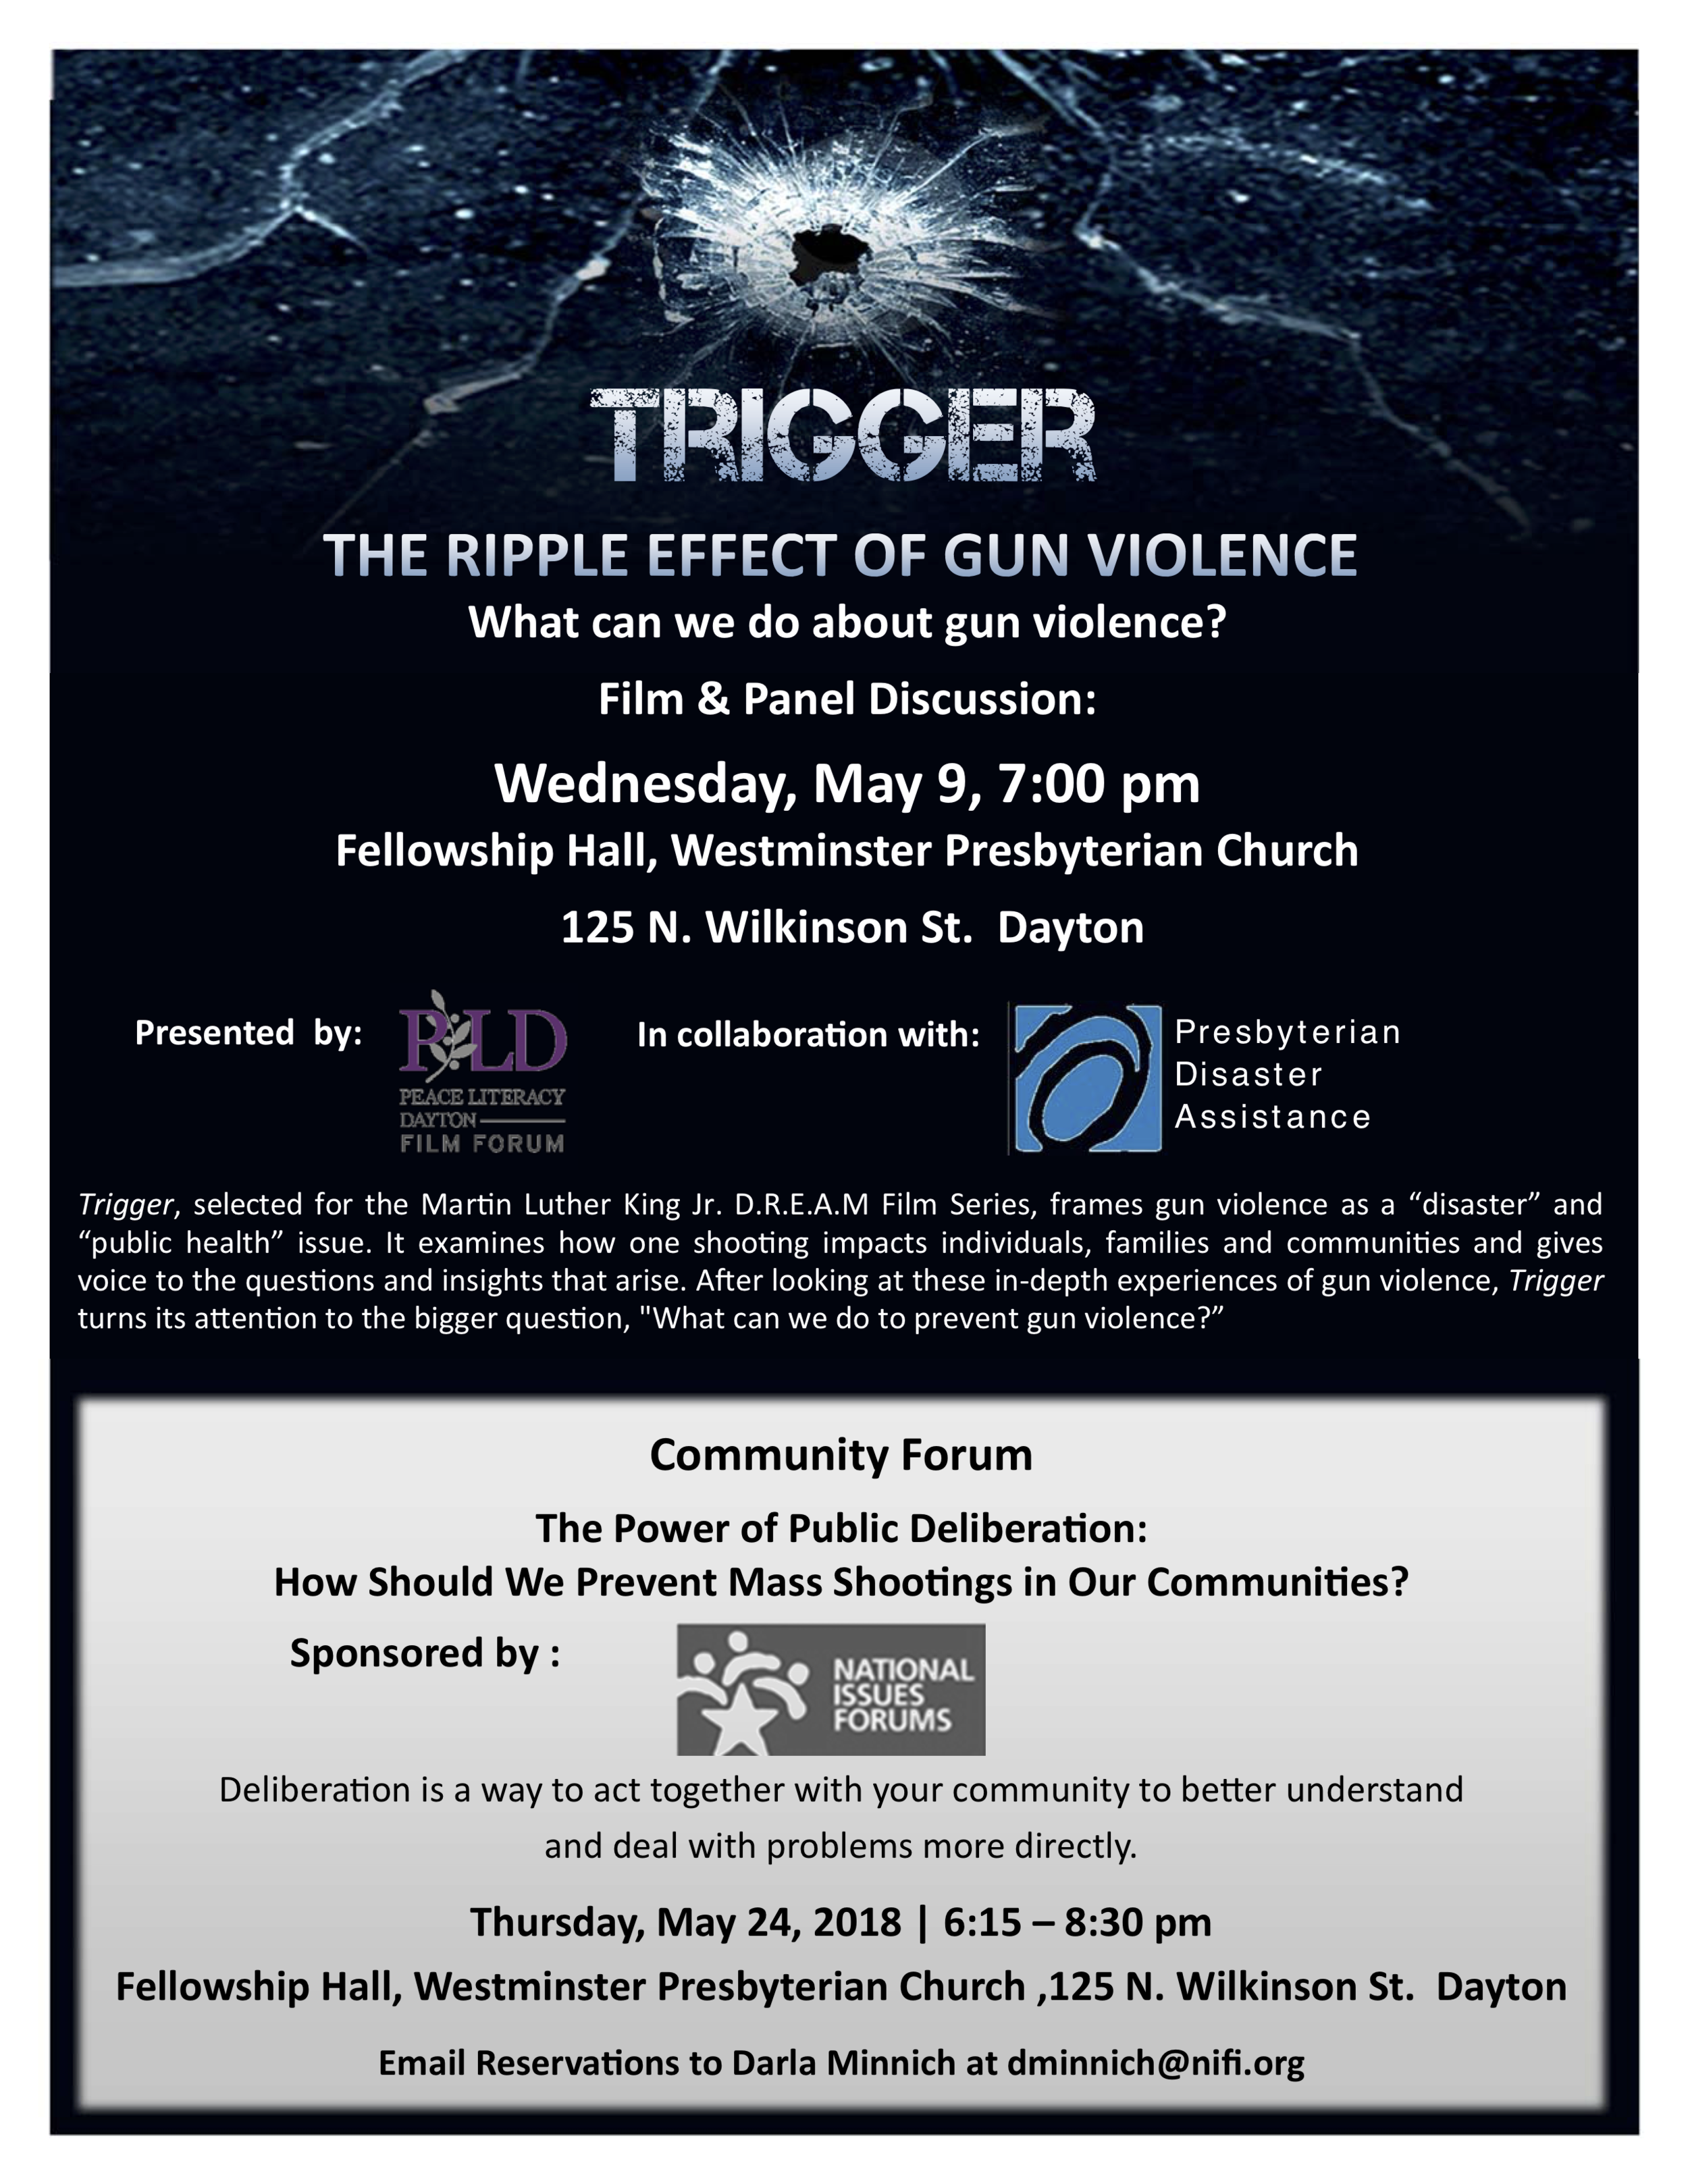 """SEE THE TRAILER/JOIN US FOR A SHOWING ...   A Short Film Highlighting the story of how gun violence impacts individuals and communities and examines its """"ripple effect"""" to Be Shown on Wednesday, May 9th at Westminster Presbyterian Church    MORE AT:    https://www.facebook.com/PeaceLiteracyDaytonFilmForum/"""